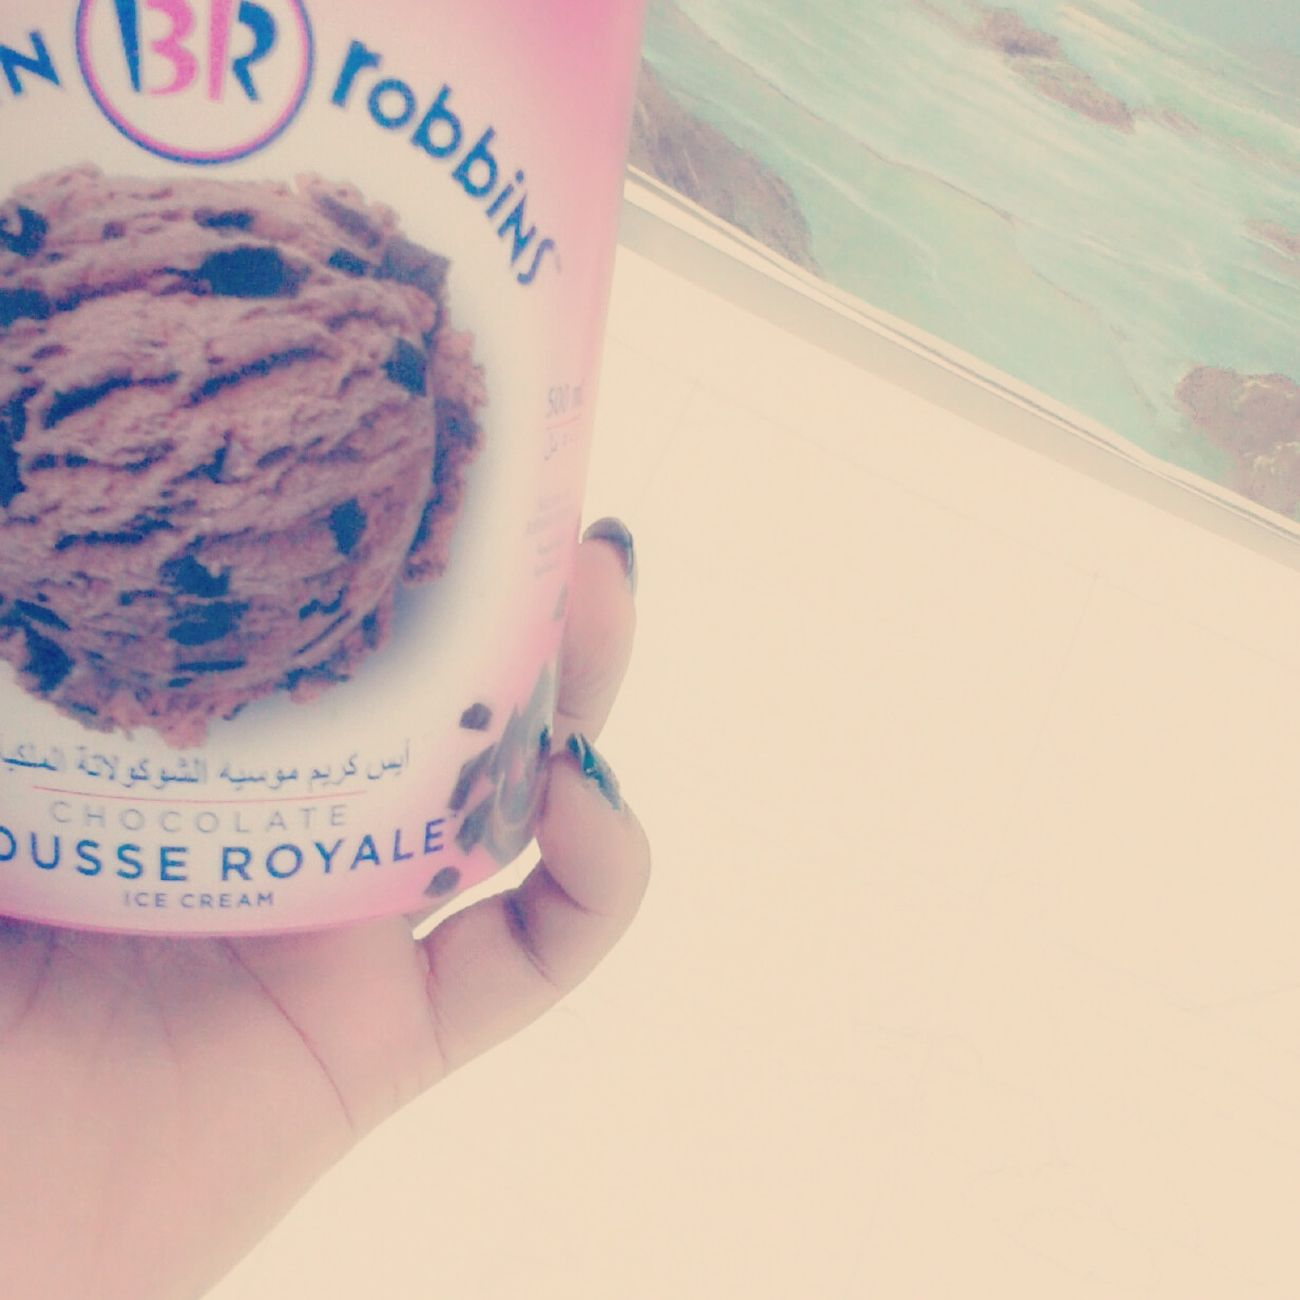 Baskin Robbins Love Chocolate Chocolate Mousse Royale